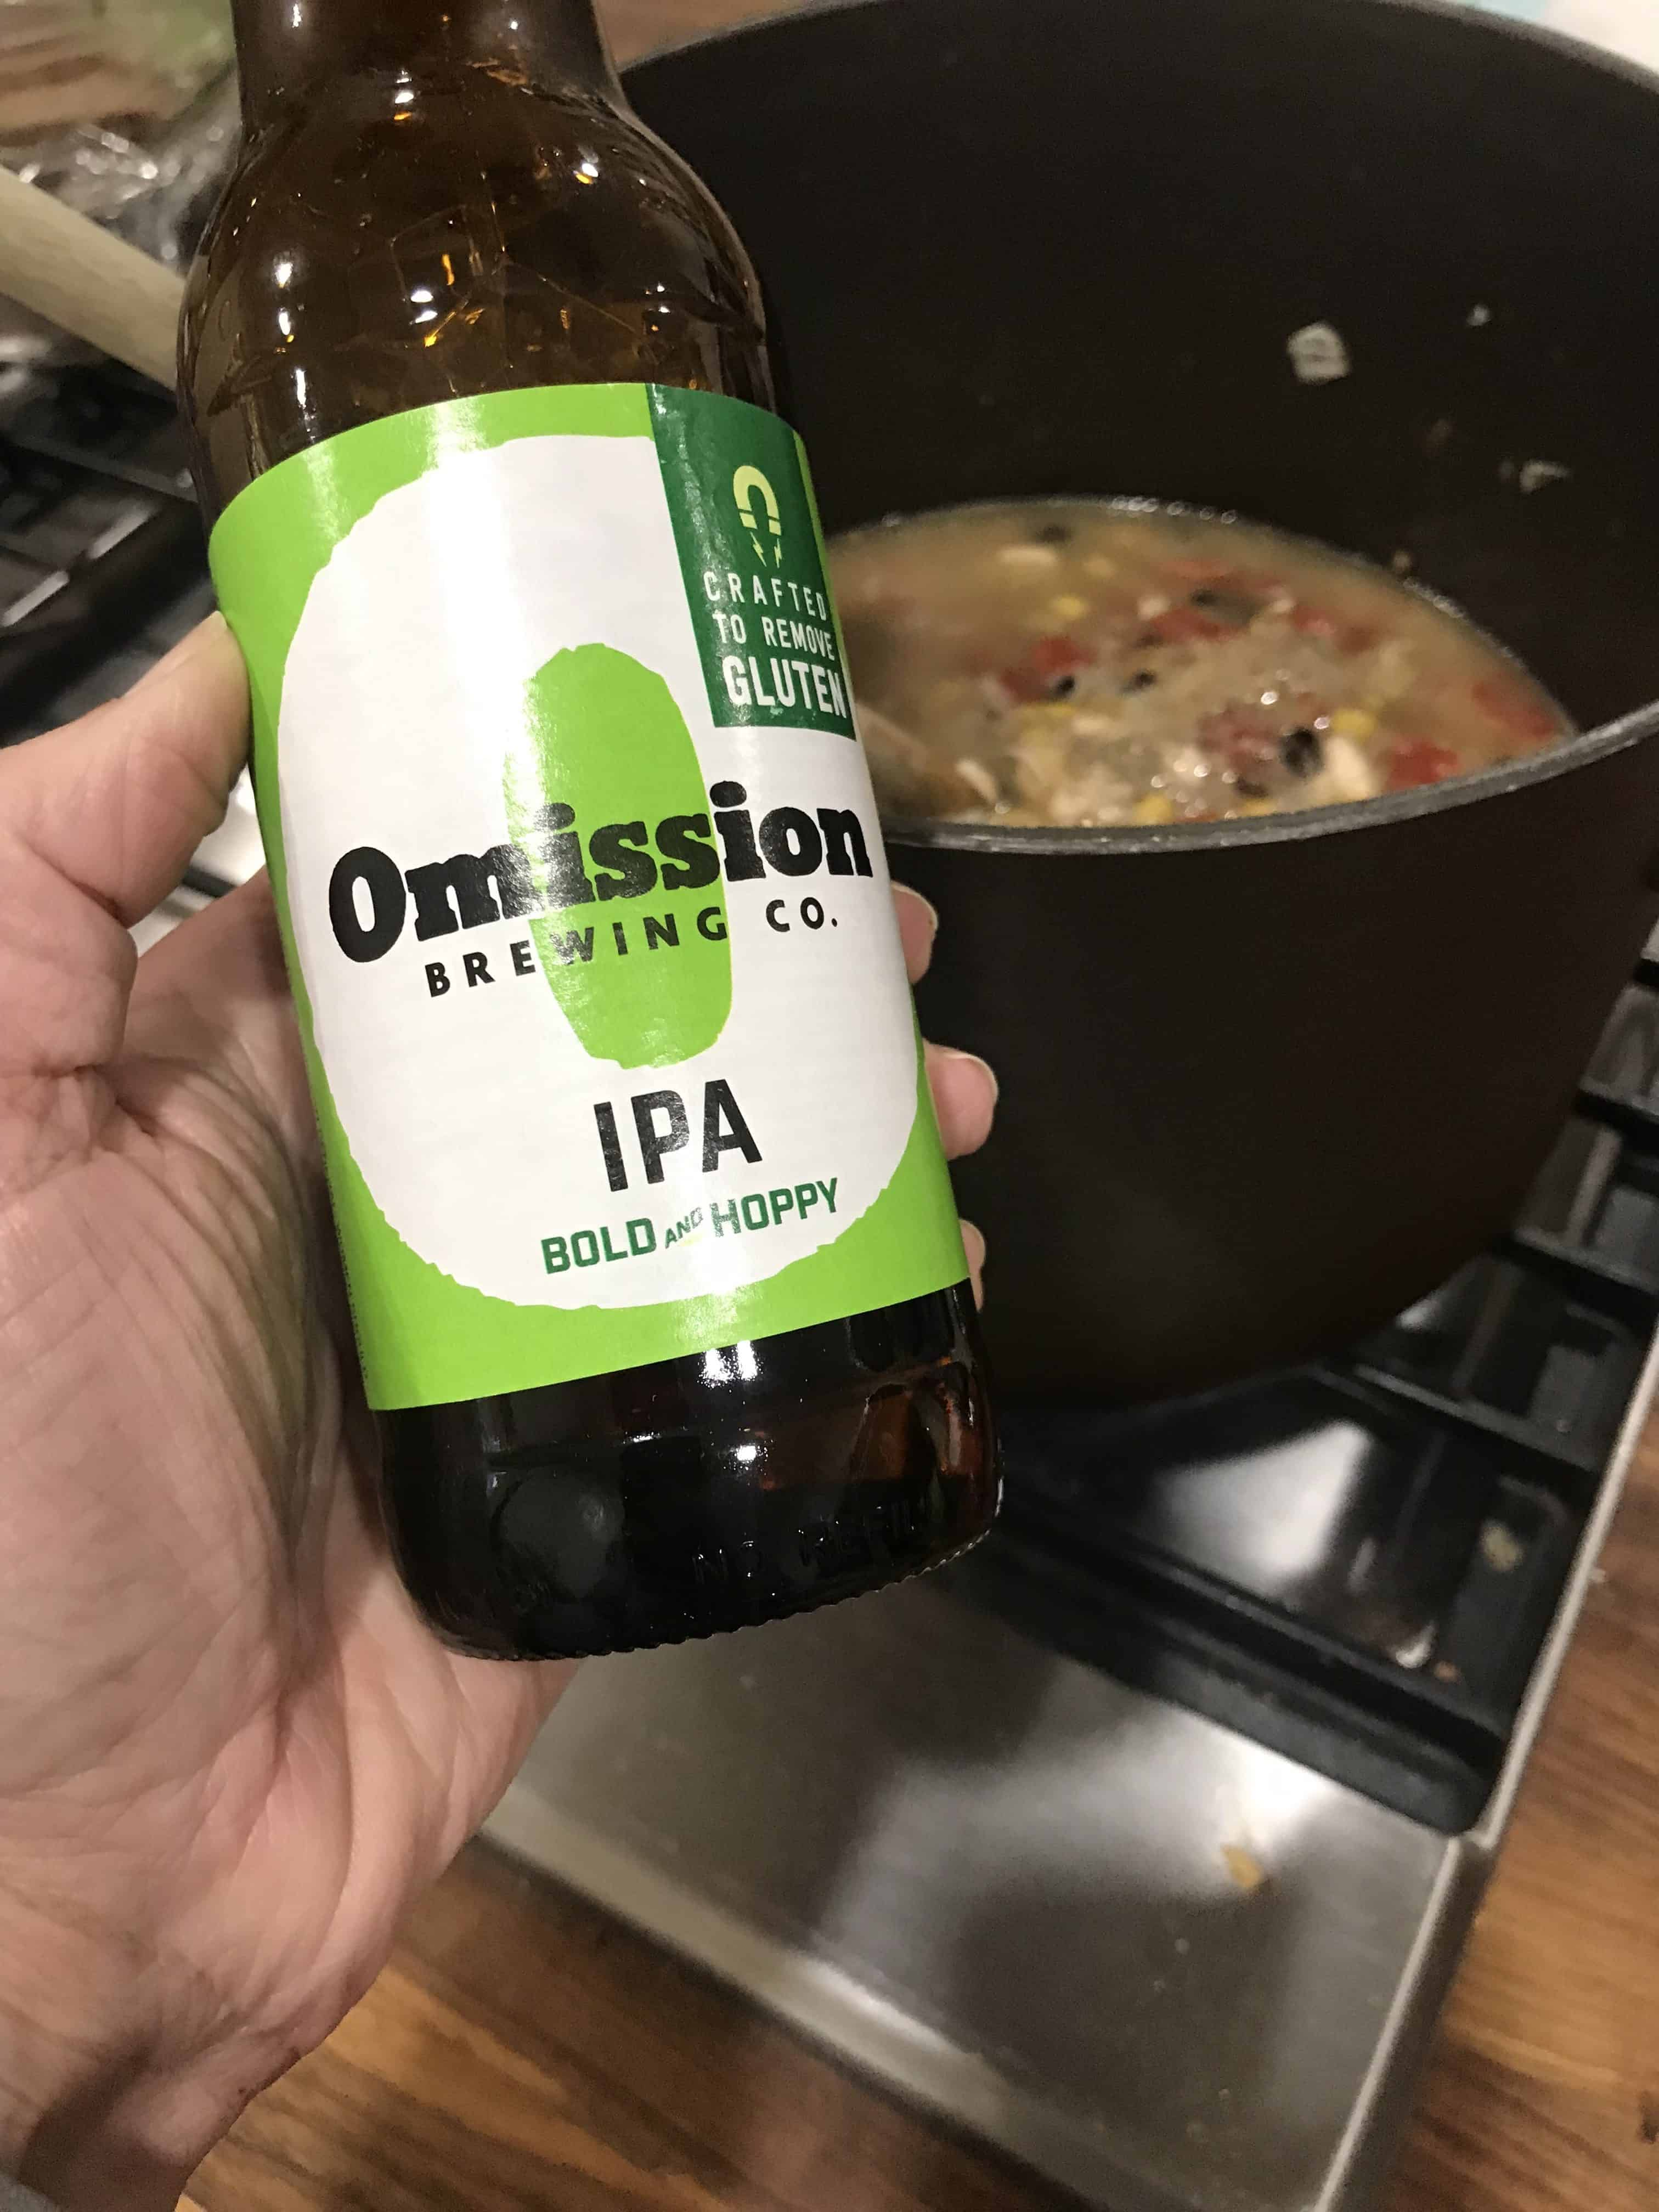 Gluten free beer for tortilla soup